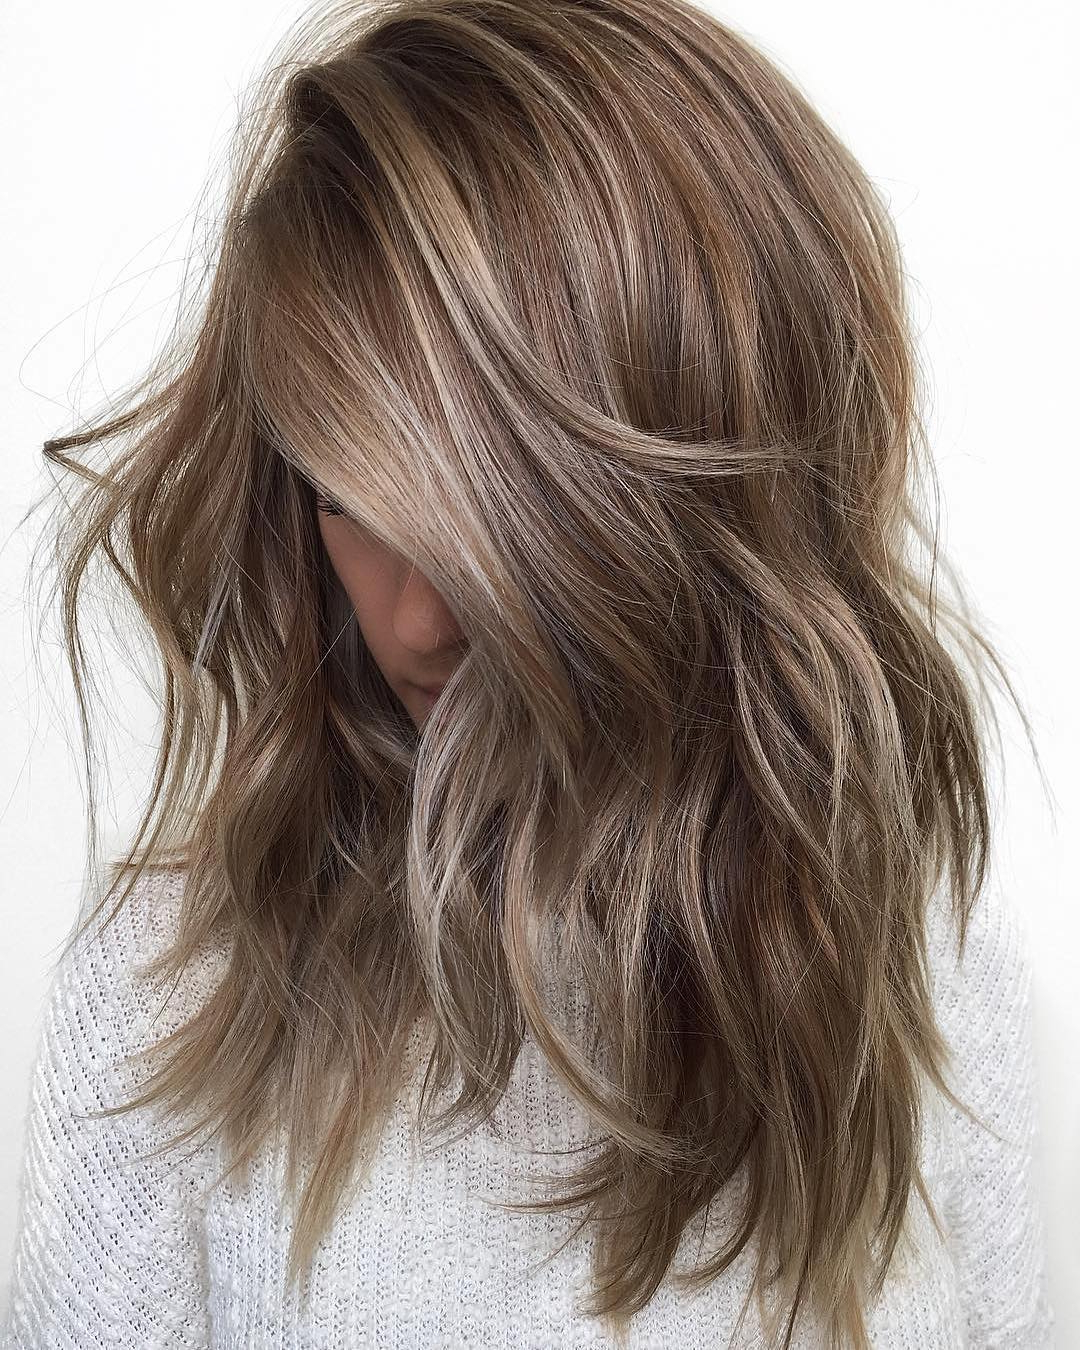 Latest Long Layered Light Chocolate Brown Haircuts For 10 Balayage Ombre Hair Styles For Shoulder Length Hair, Women (Gallery 18 of 20)